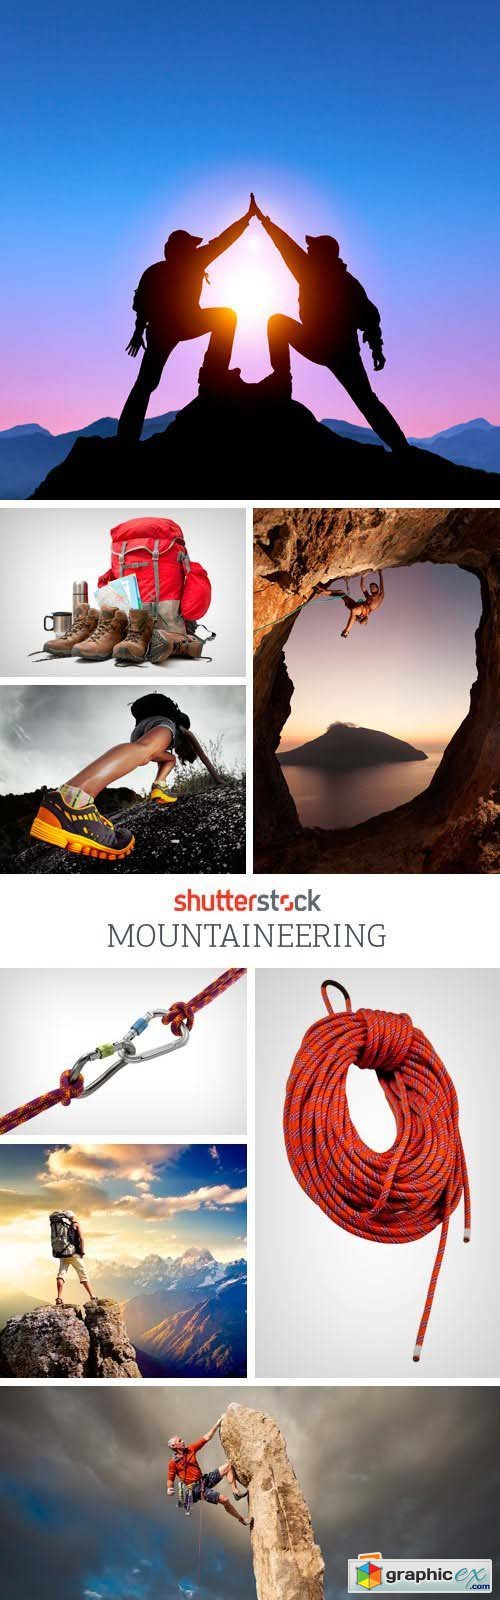 Amazing SS - Mountaineering, 25xJPGs